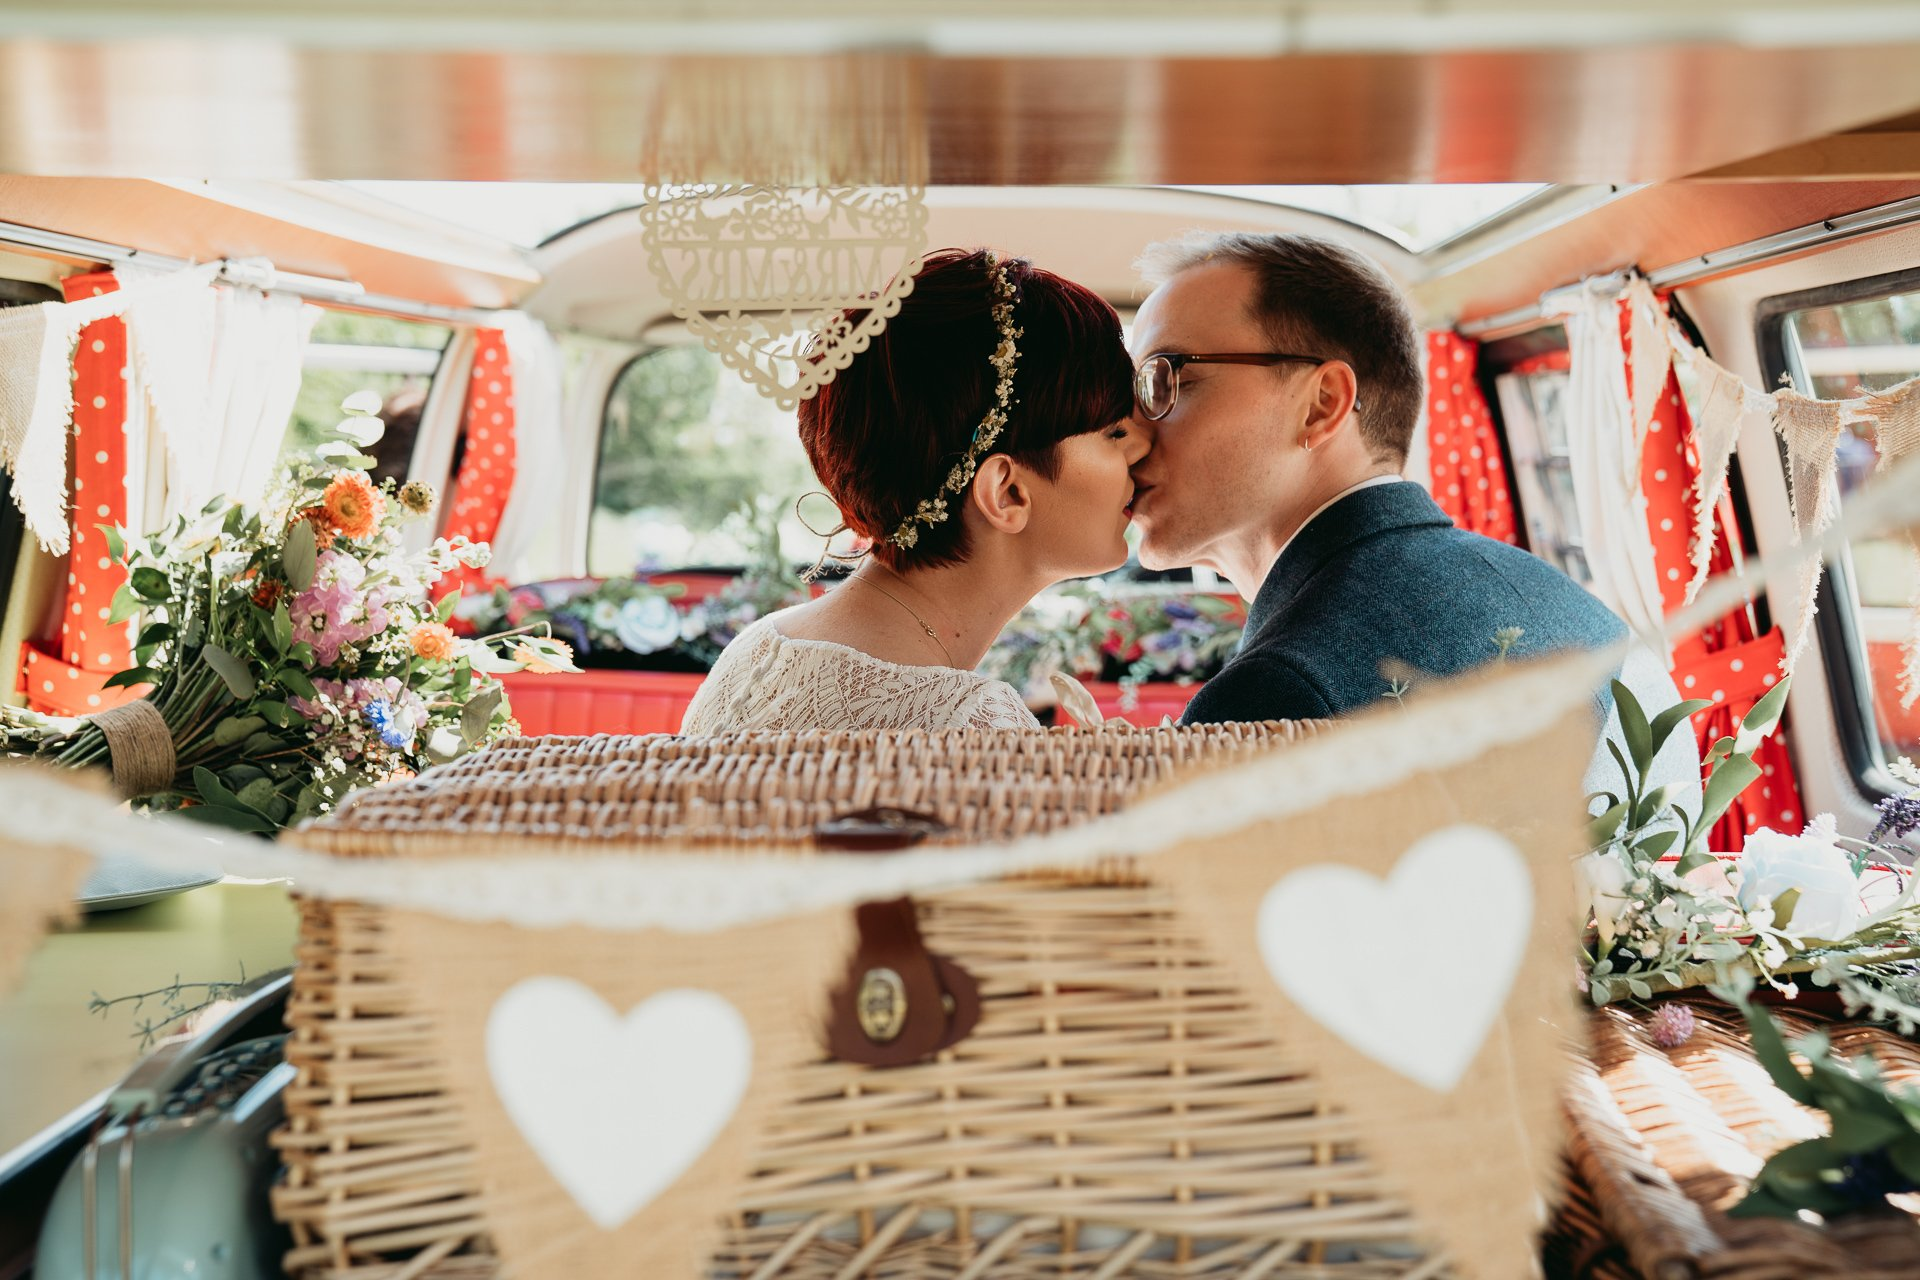 Bride and Groom kissing in the rear of a wedding VW camper van